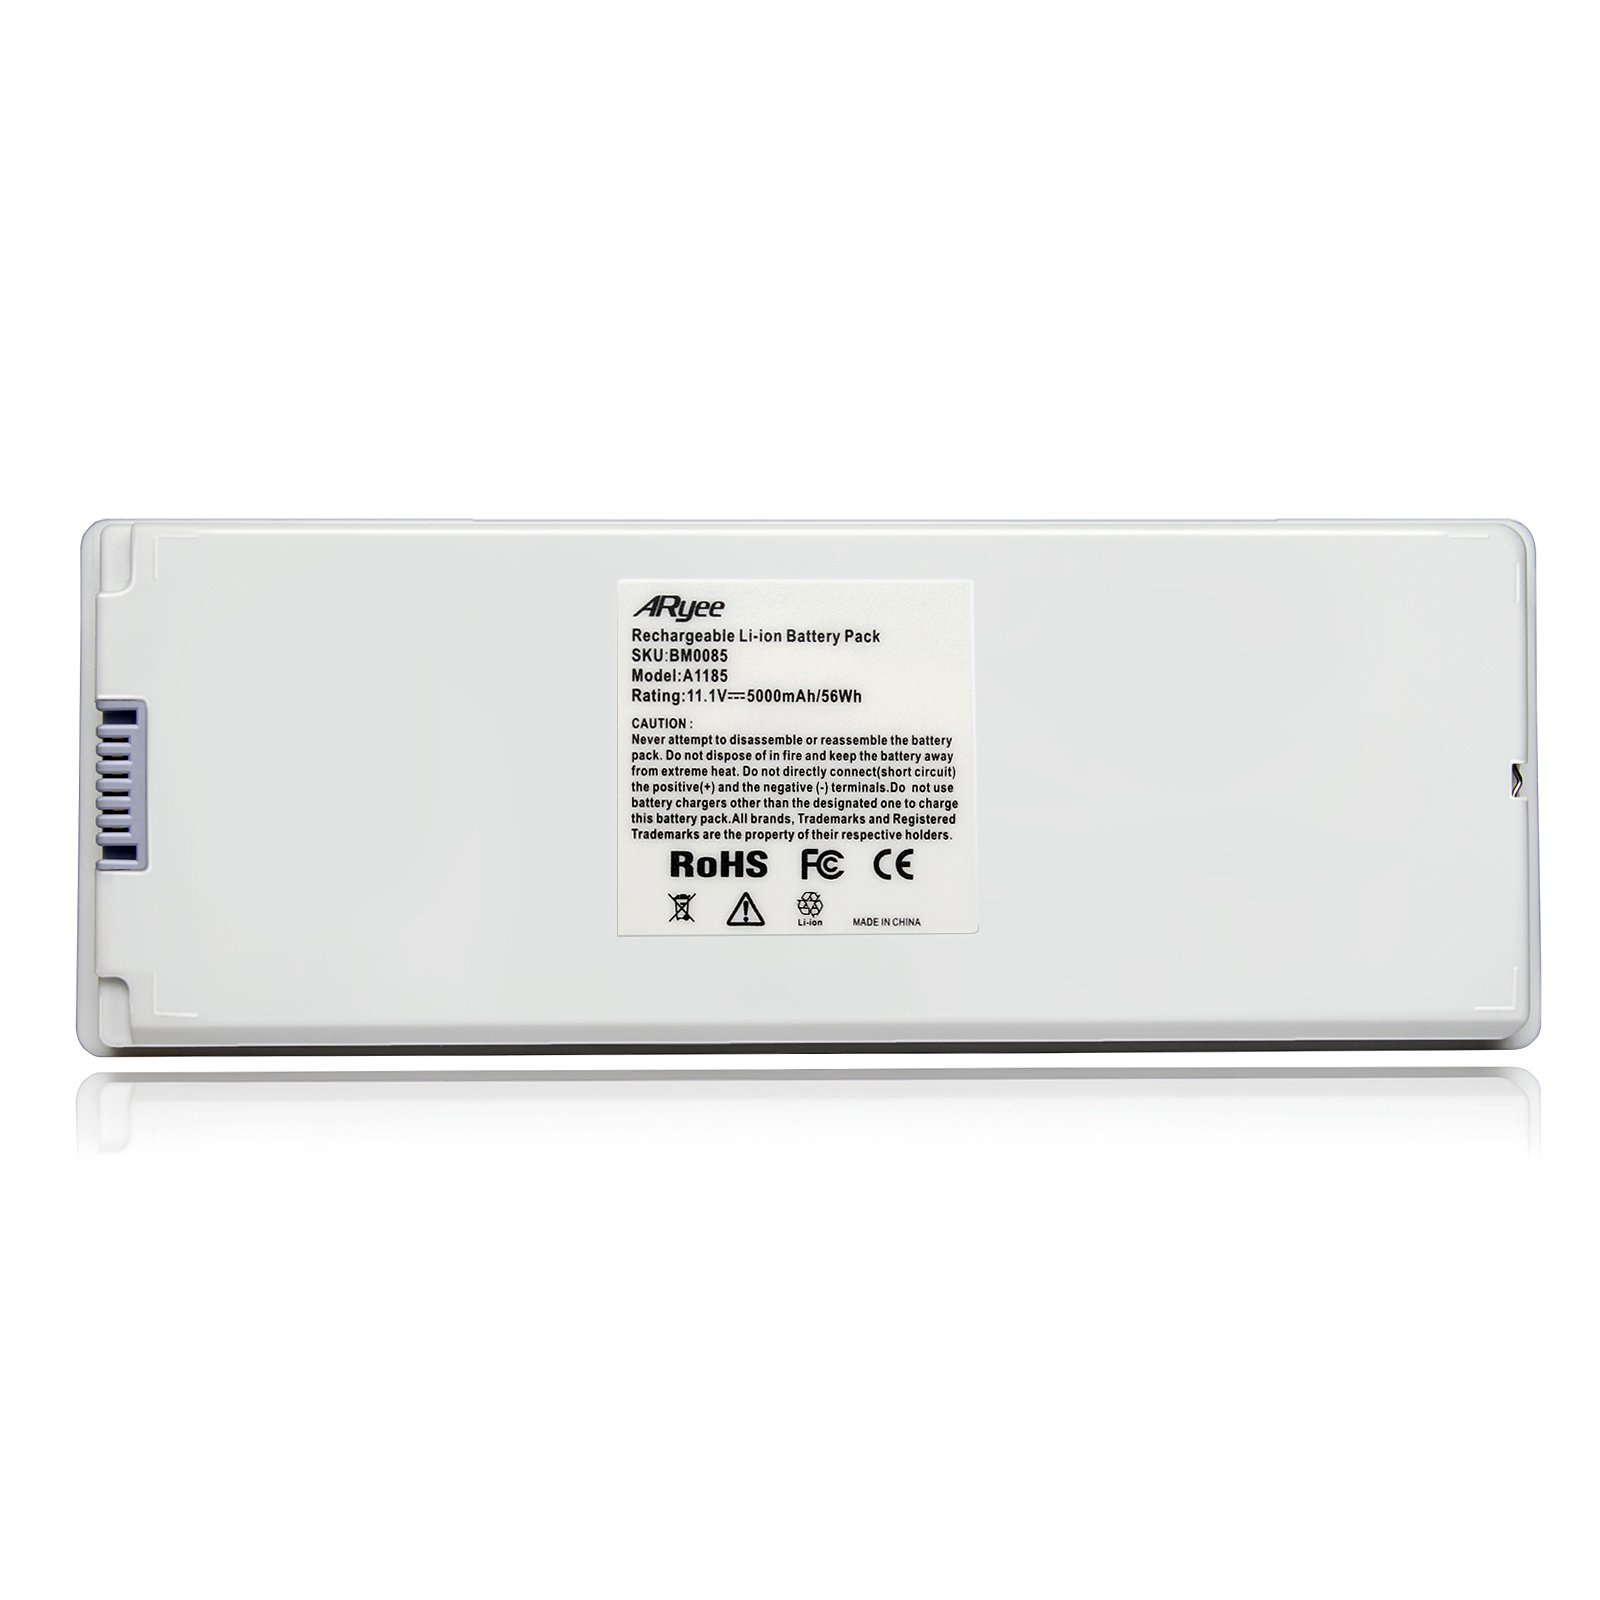 A1185 Battery Laptop Macbook Battery White Power Replacement for 13''MacBook Pro(2006&2007) Fits MA561, MA561FE/A, MA561G/A, MA561J/A, MA561LL/A [11.1v 56Wh] ARyee